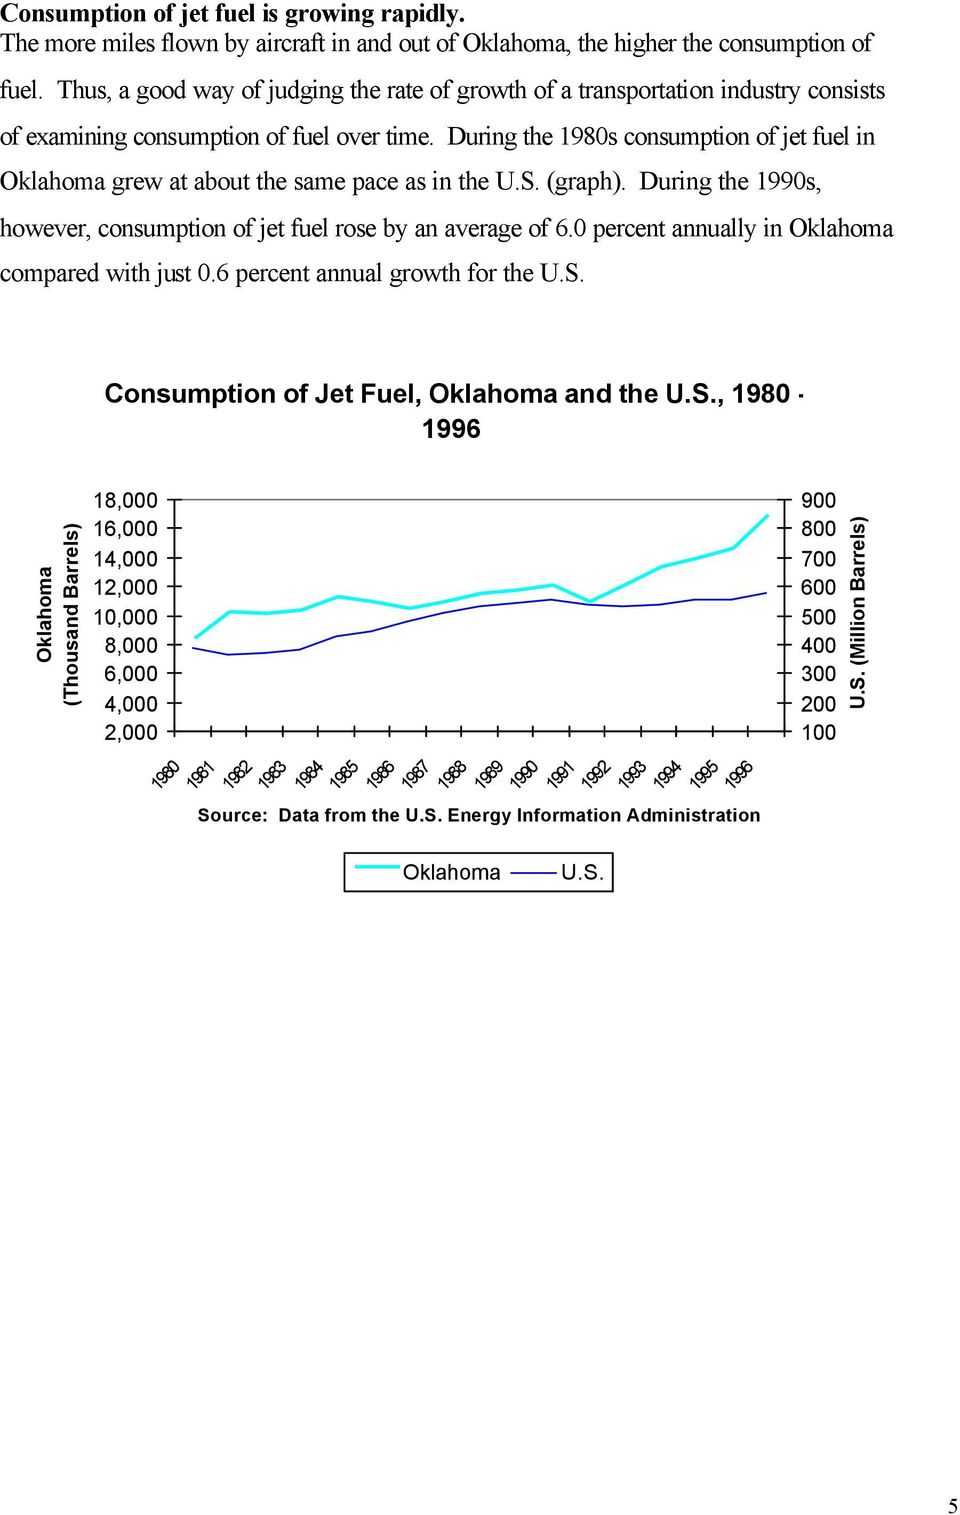 During the 1980s consumption of jet fuel in Oklahoma grew at about the same pace as in the U.S. (graph). During the 1990s, however, consumption of jet fuel rose by an average of 6.